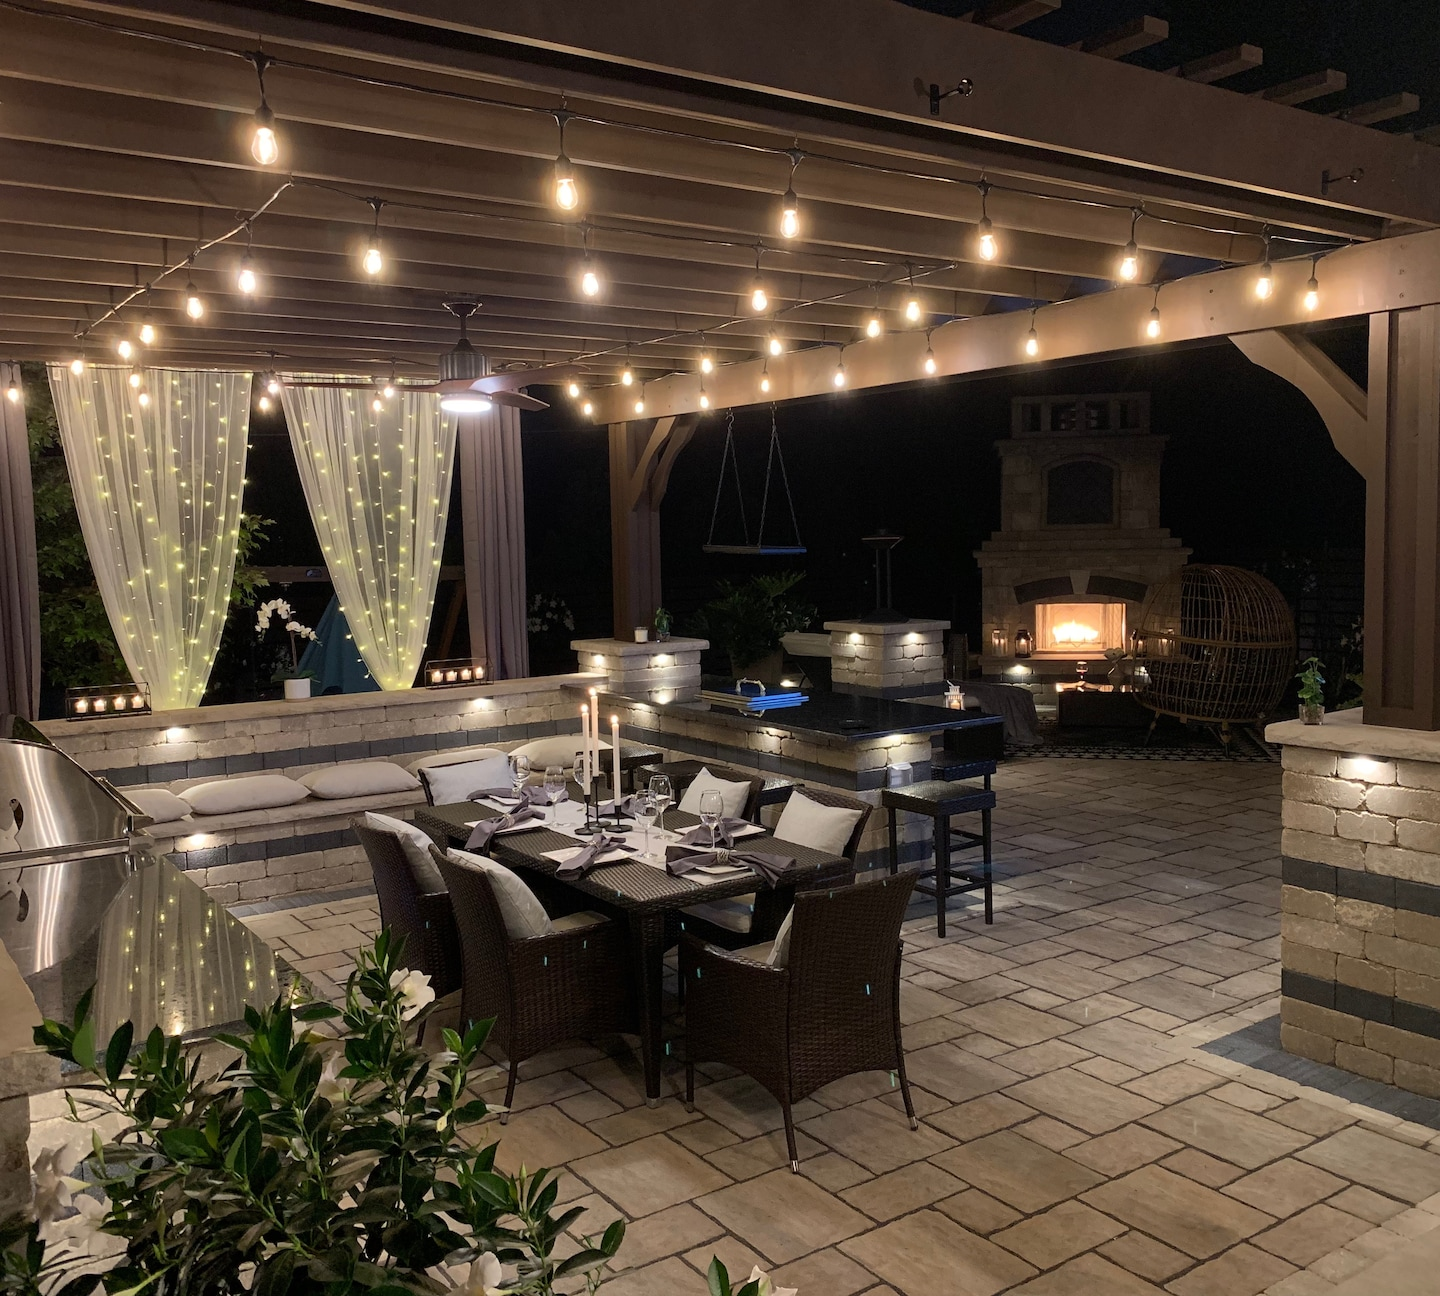 A complete outdoor kitchen patio/Fireplace